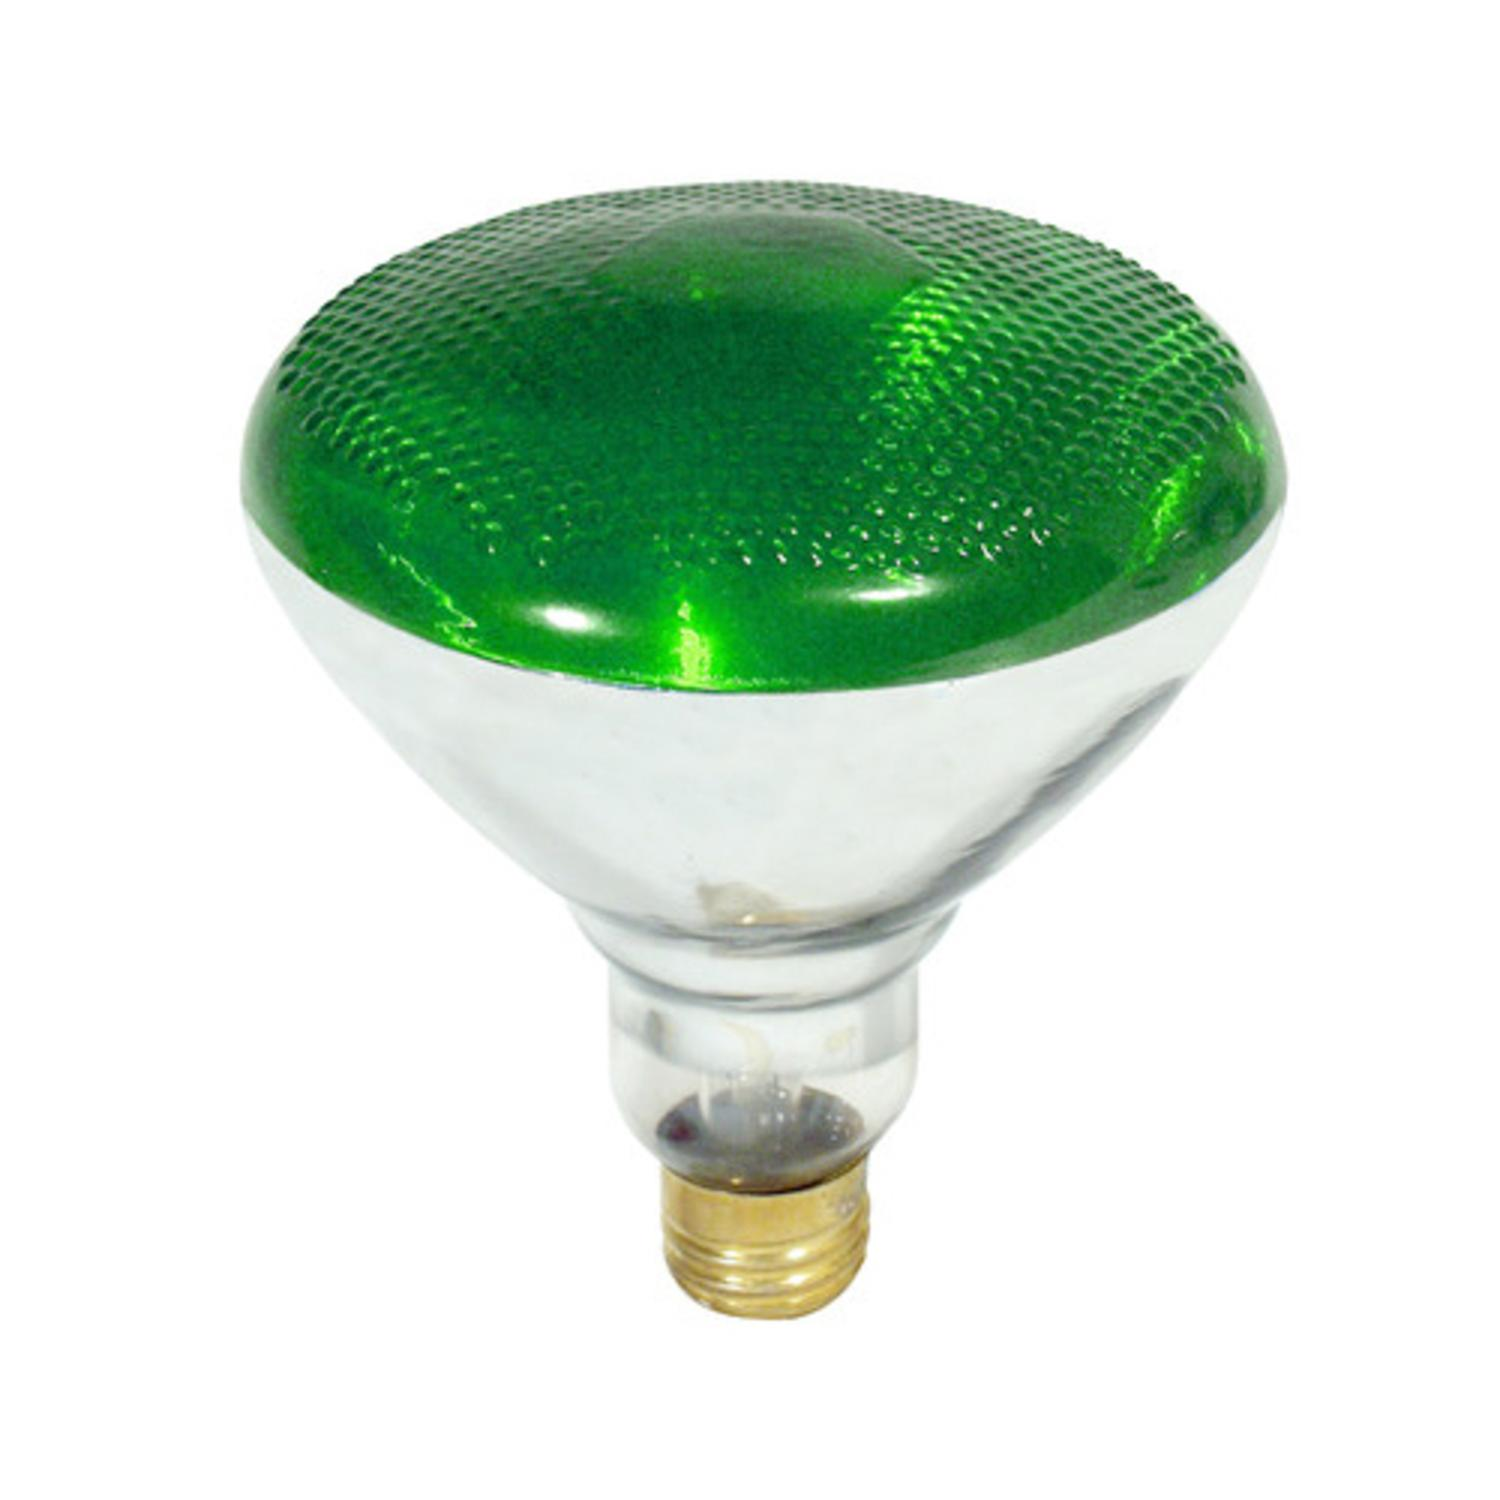 Green Incandescent Reflector Indoor/Outdoor Flood Light Lamp 100 Watt  Walmart.com